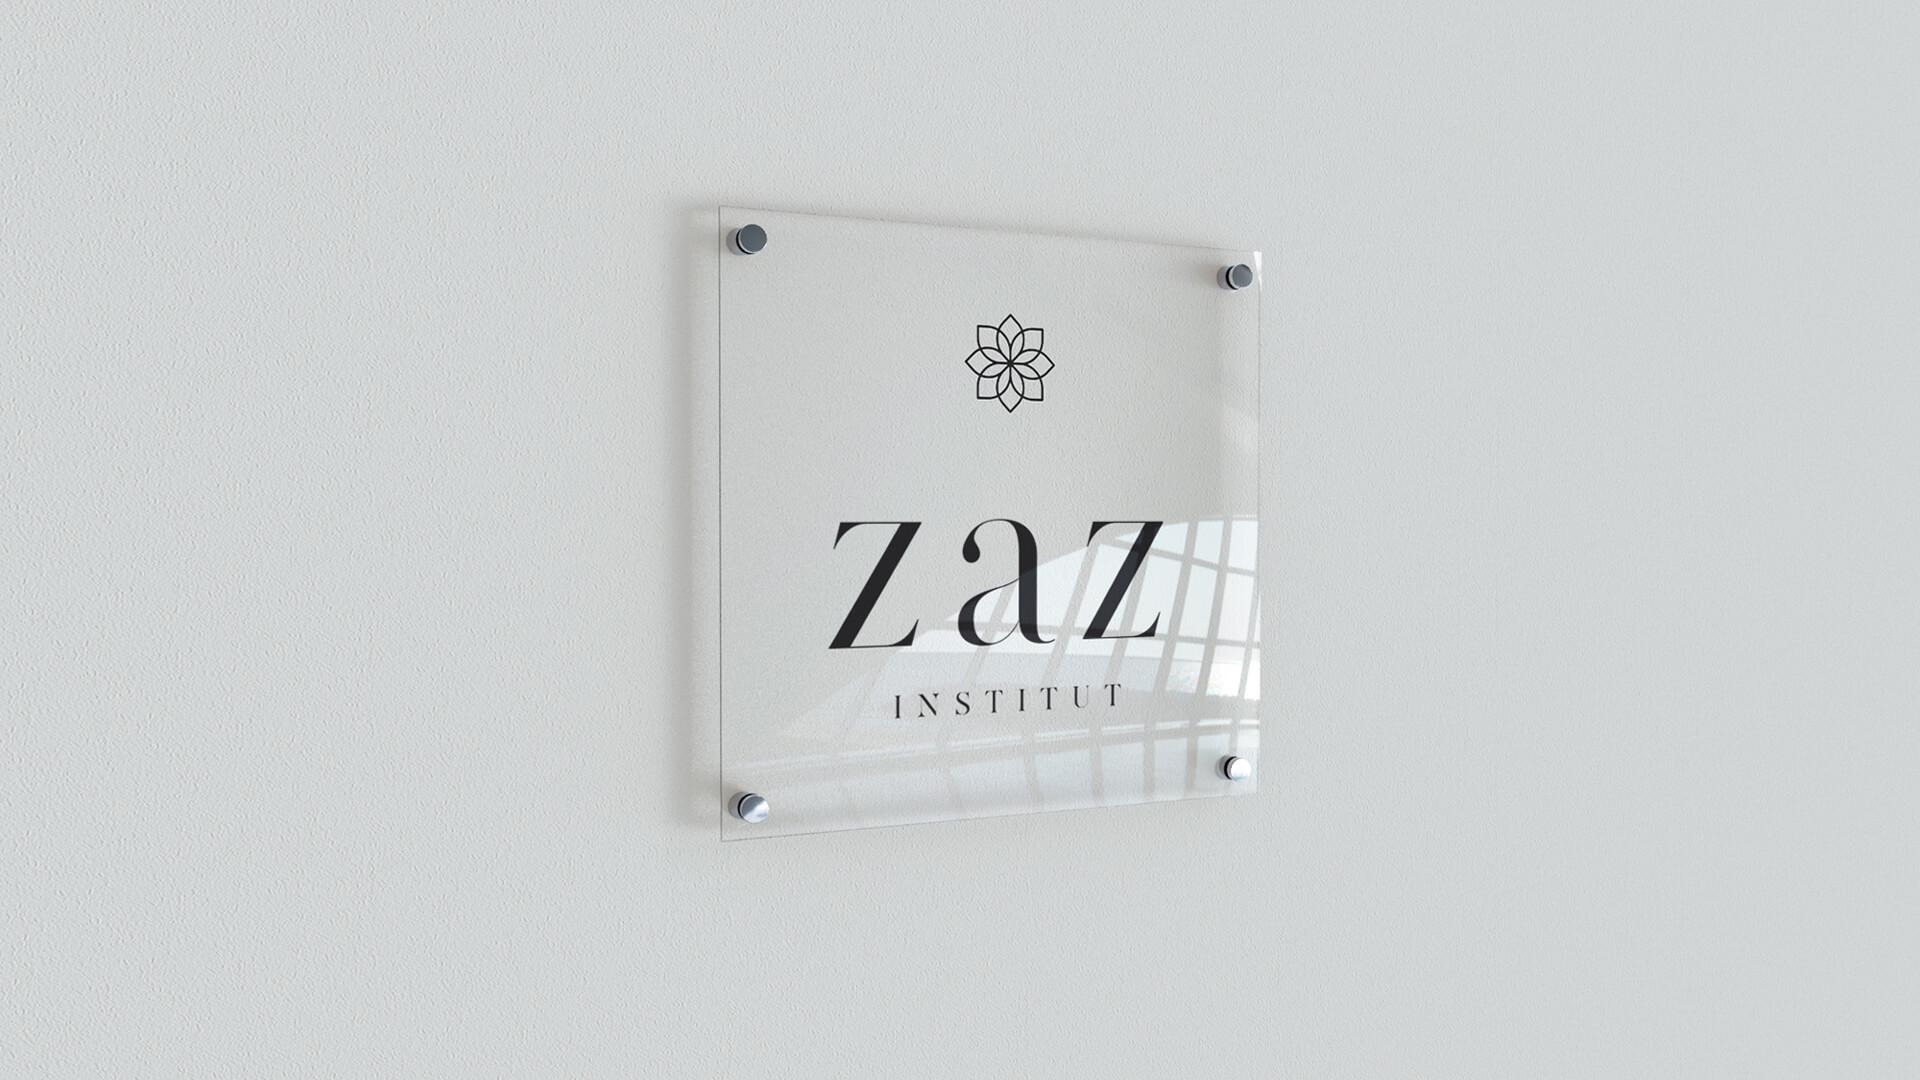 my-and-graphiste-freelance-marseille-zaz-institut-logo-plaque